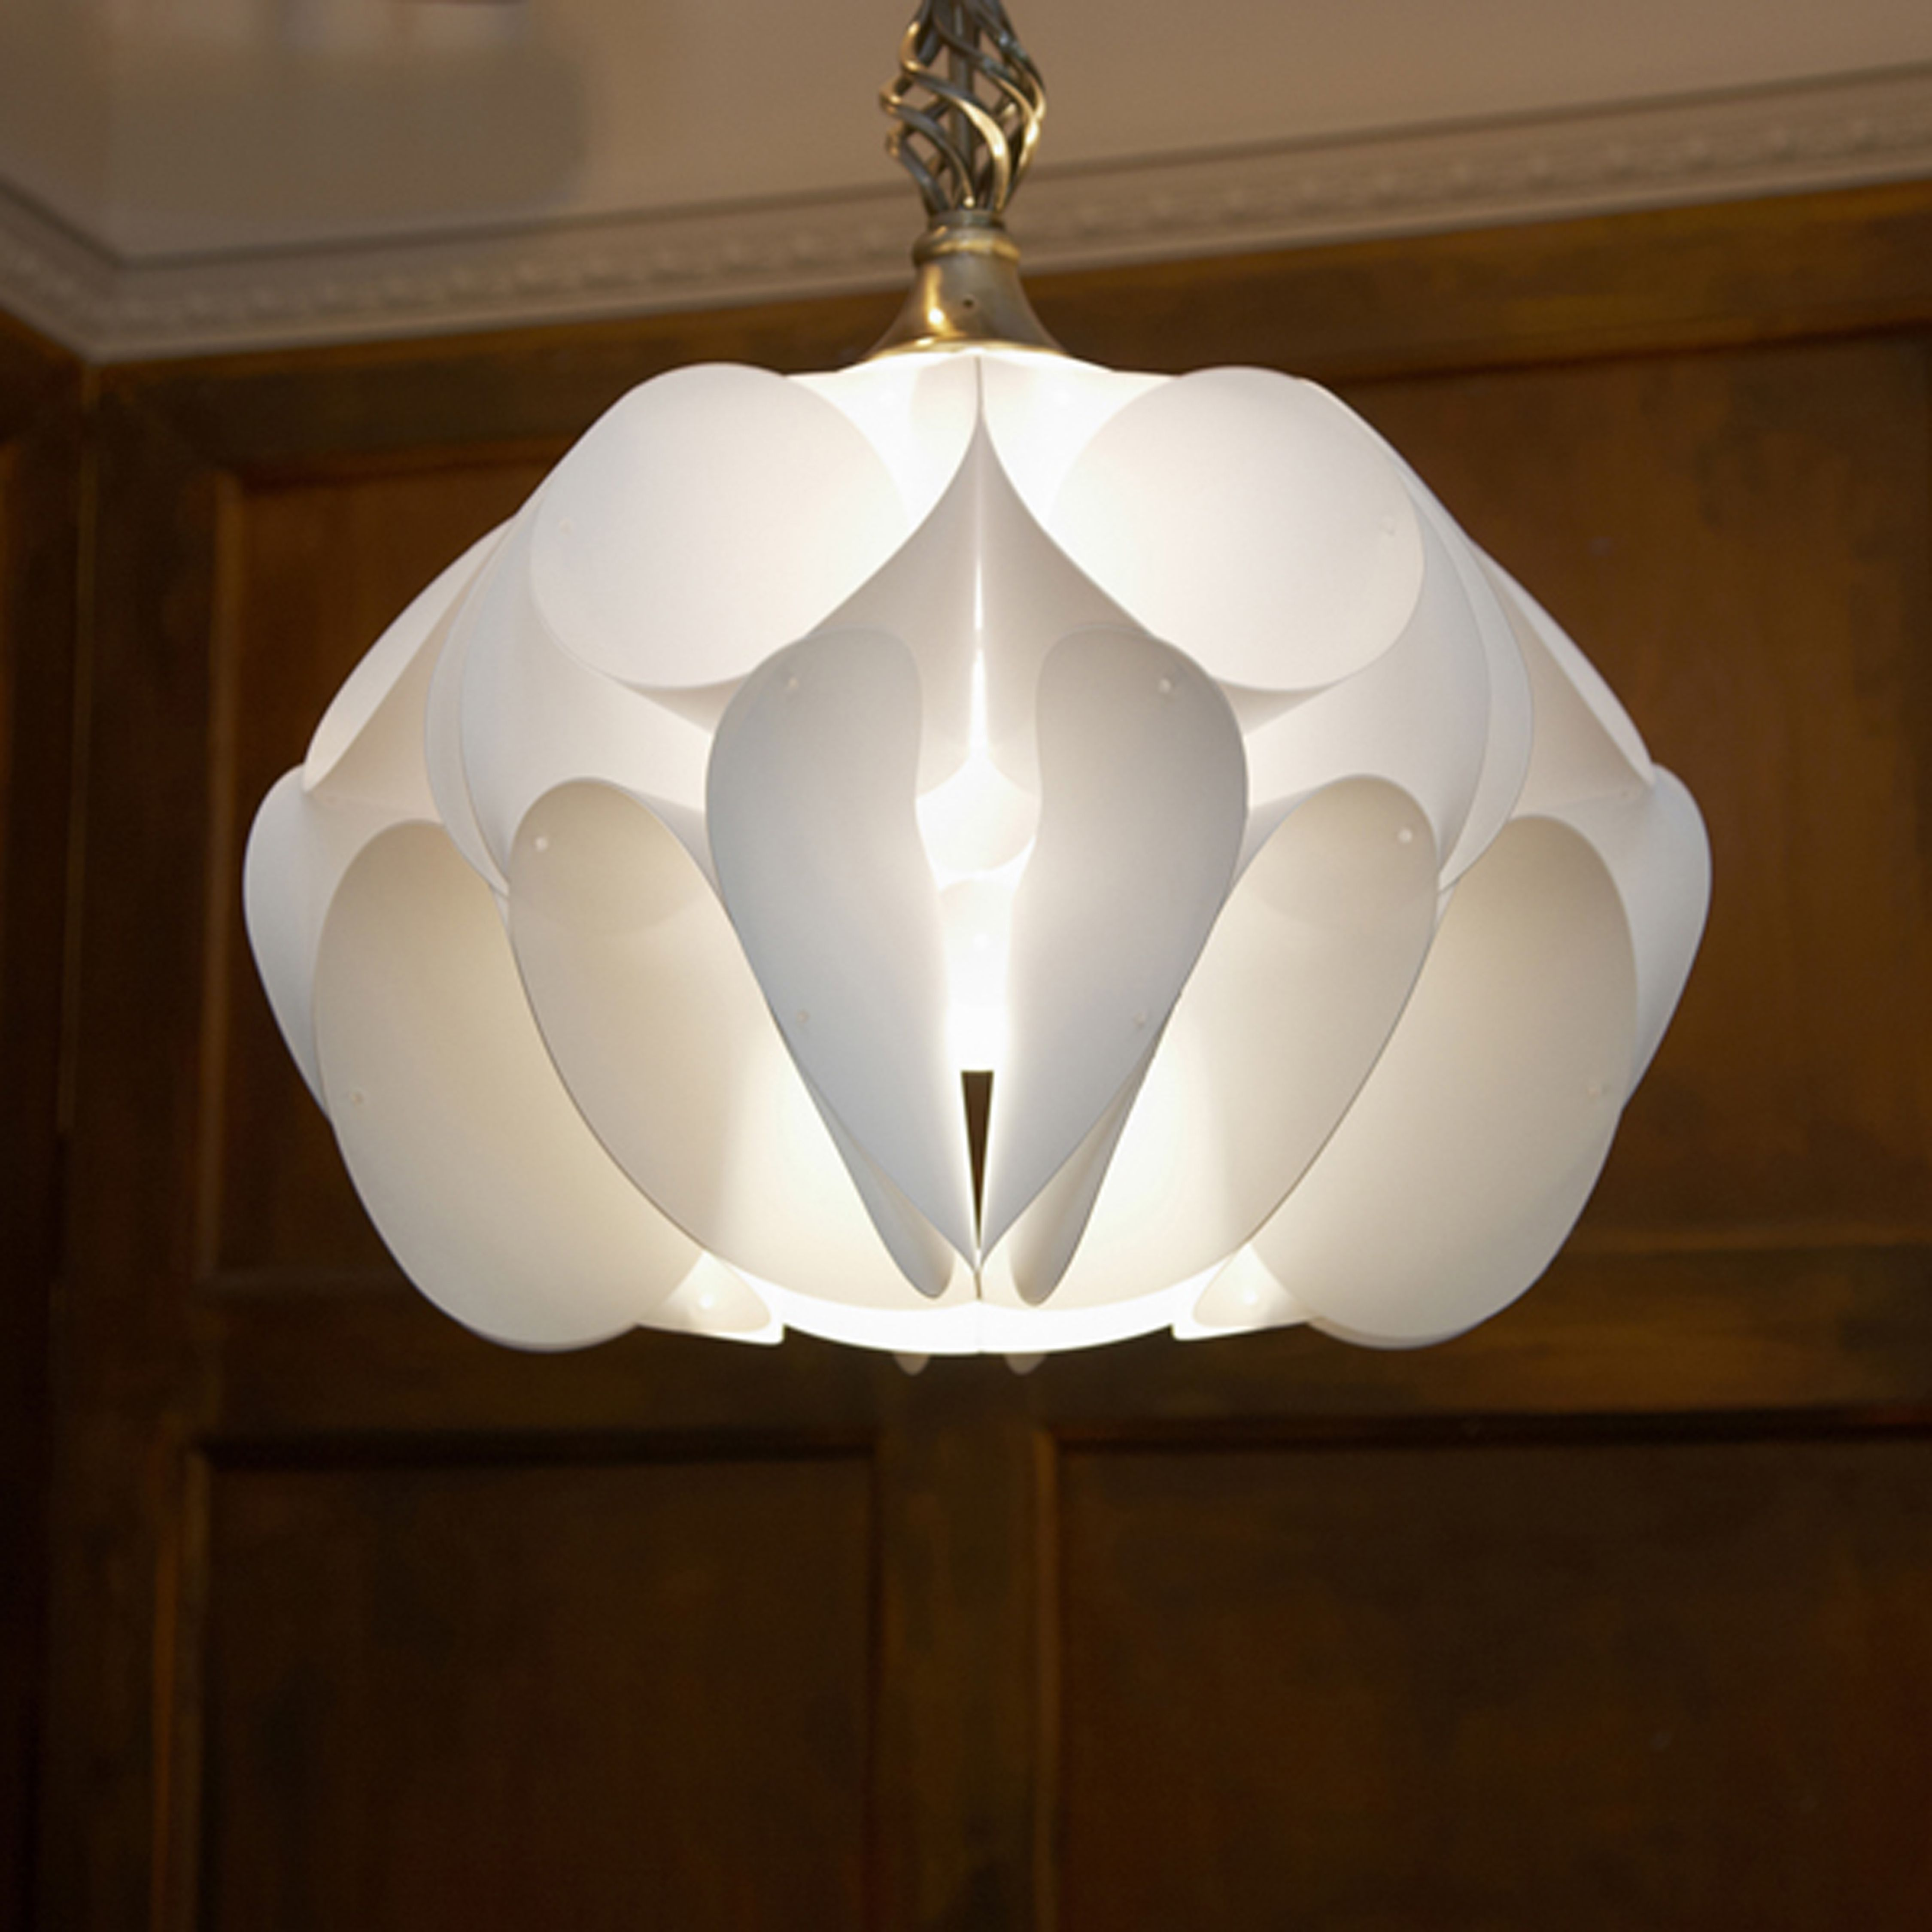 Orchid By Kaigami Ltd Made In United Kingdom Uk On Crowdyhouse Light Shades Light Lamp